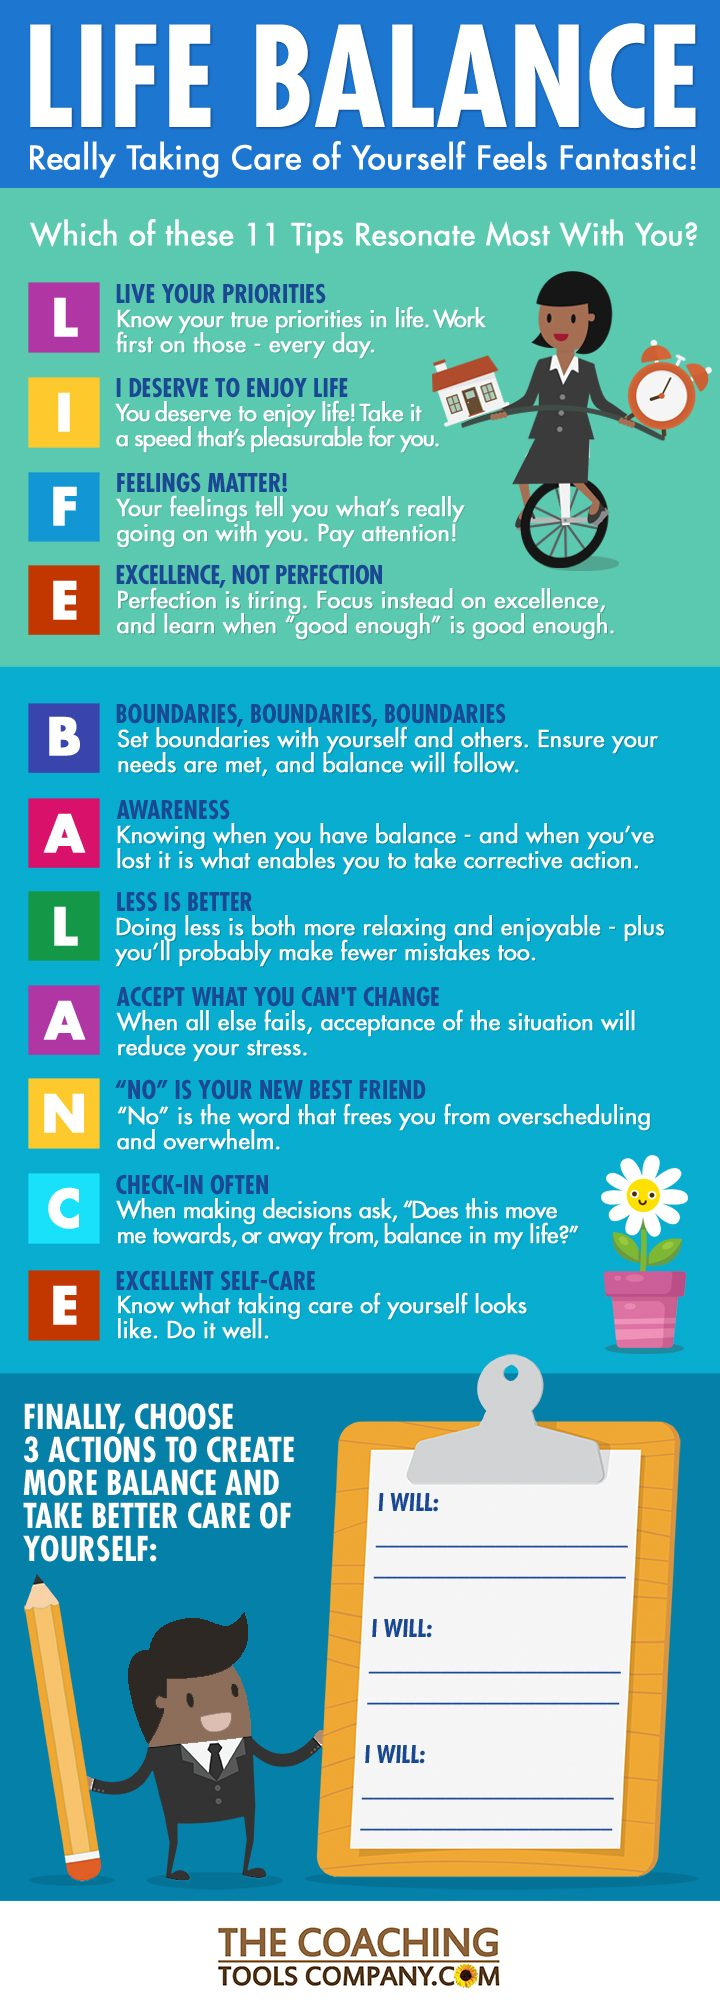 Life Balance INFOGRAPHIC: 11 Powerful Tips for More Balance in Life